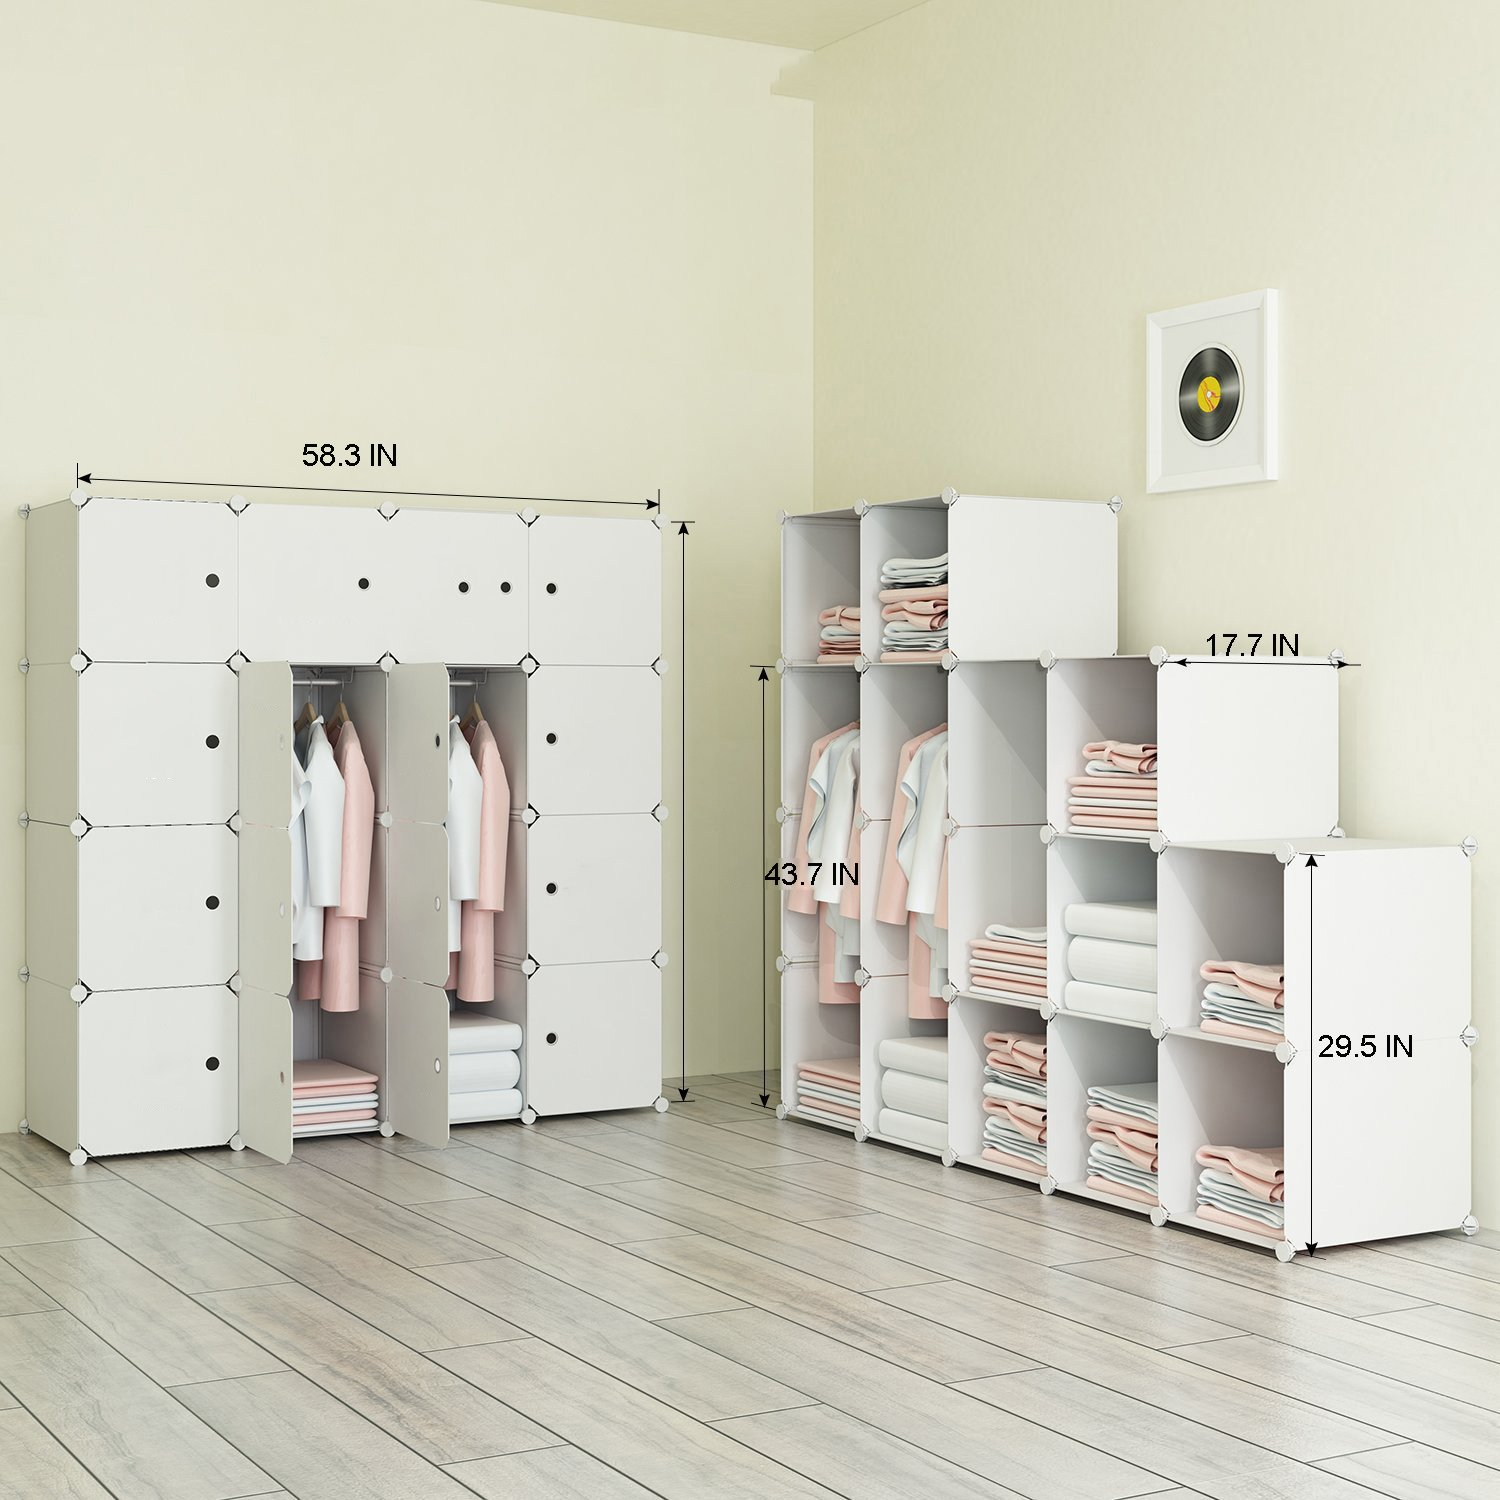 Modular Cabinet for Space Saving Towels Ideal Storage Organizer Cube for Books MEGAFUTURE Wood Pattern Portable Wardrobe Closet for Hanging Clothes Combination Armoire 8-Cube Toys